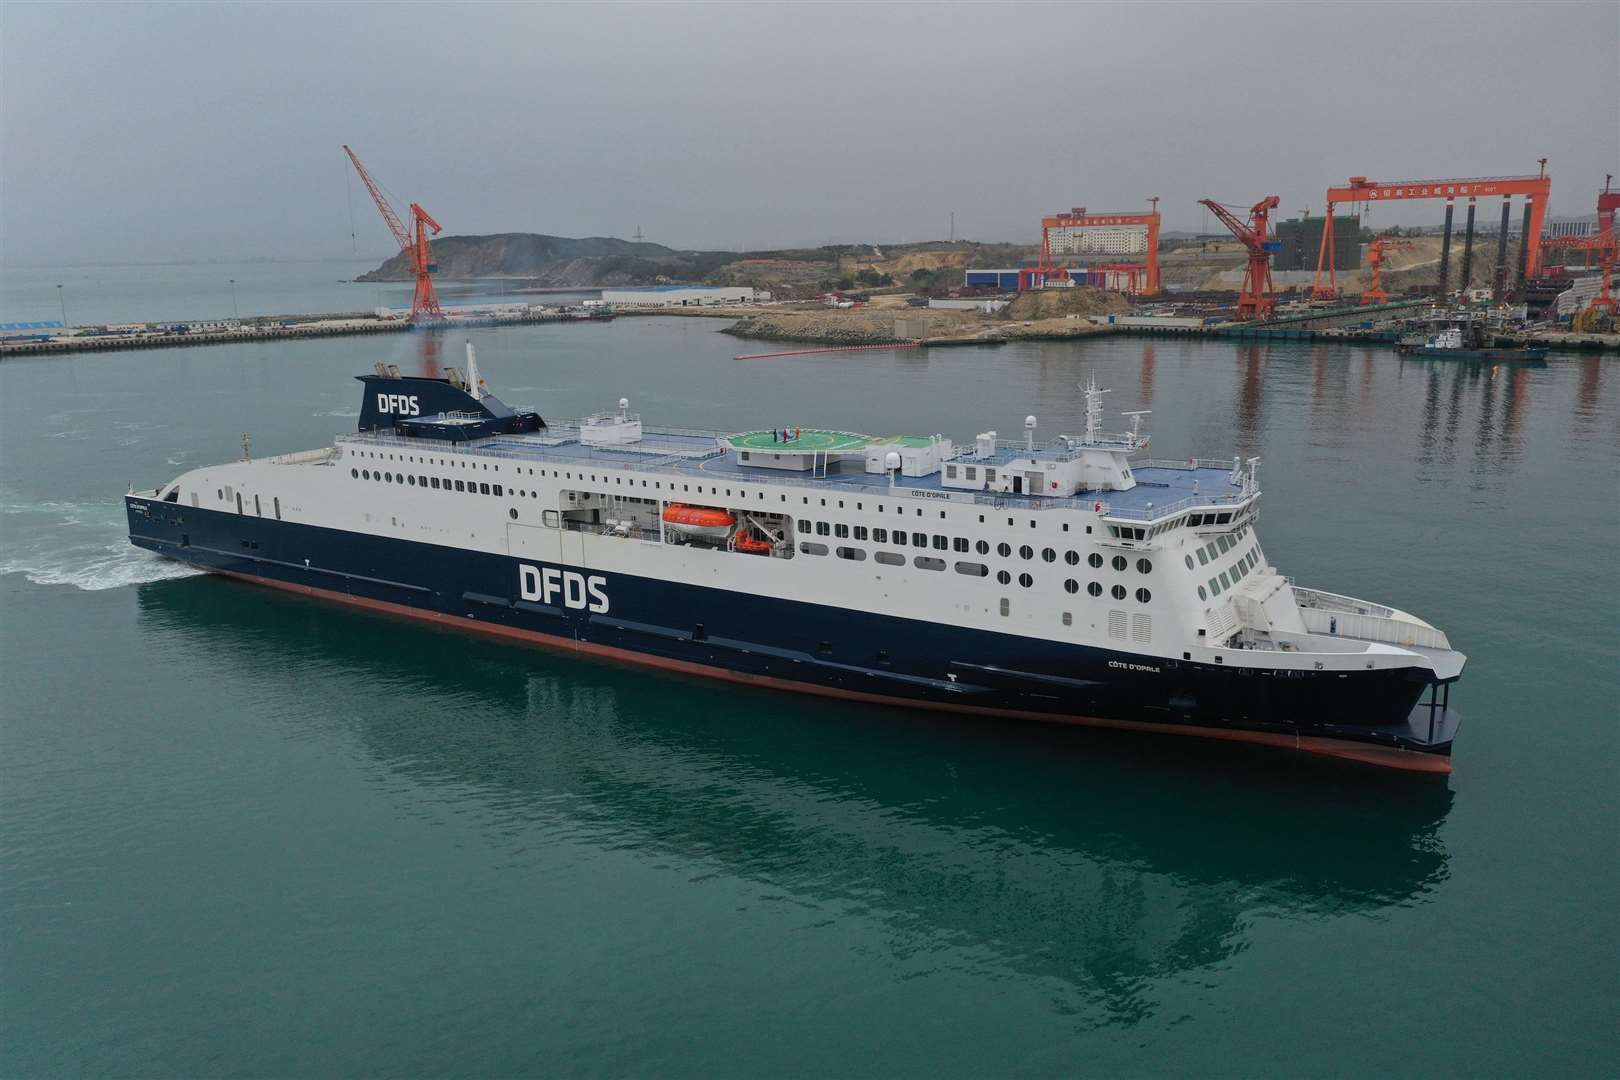 The new DFDS Côte d'Opale ferry left the Weihei shipyard in China on Thursday